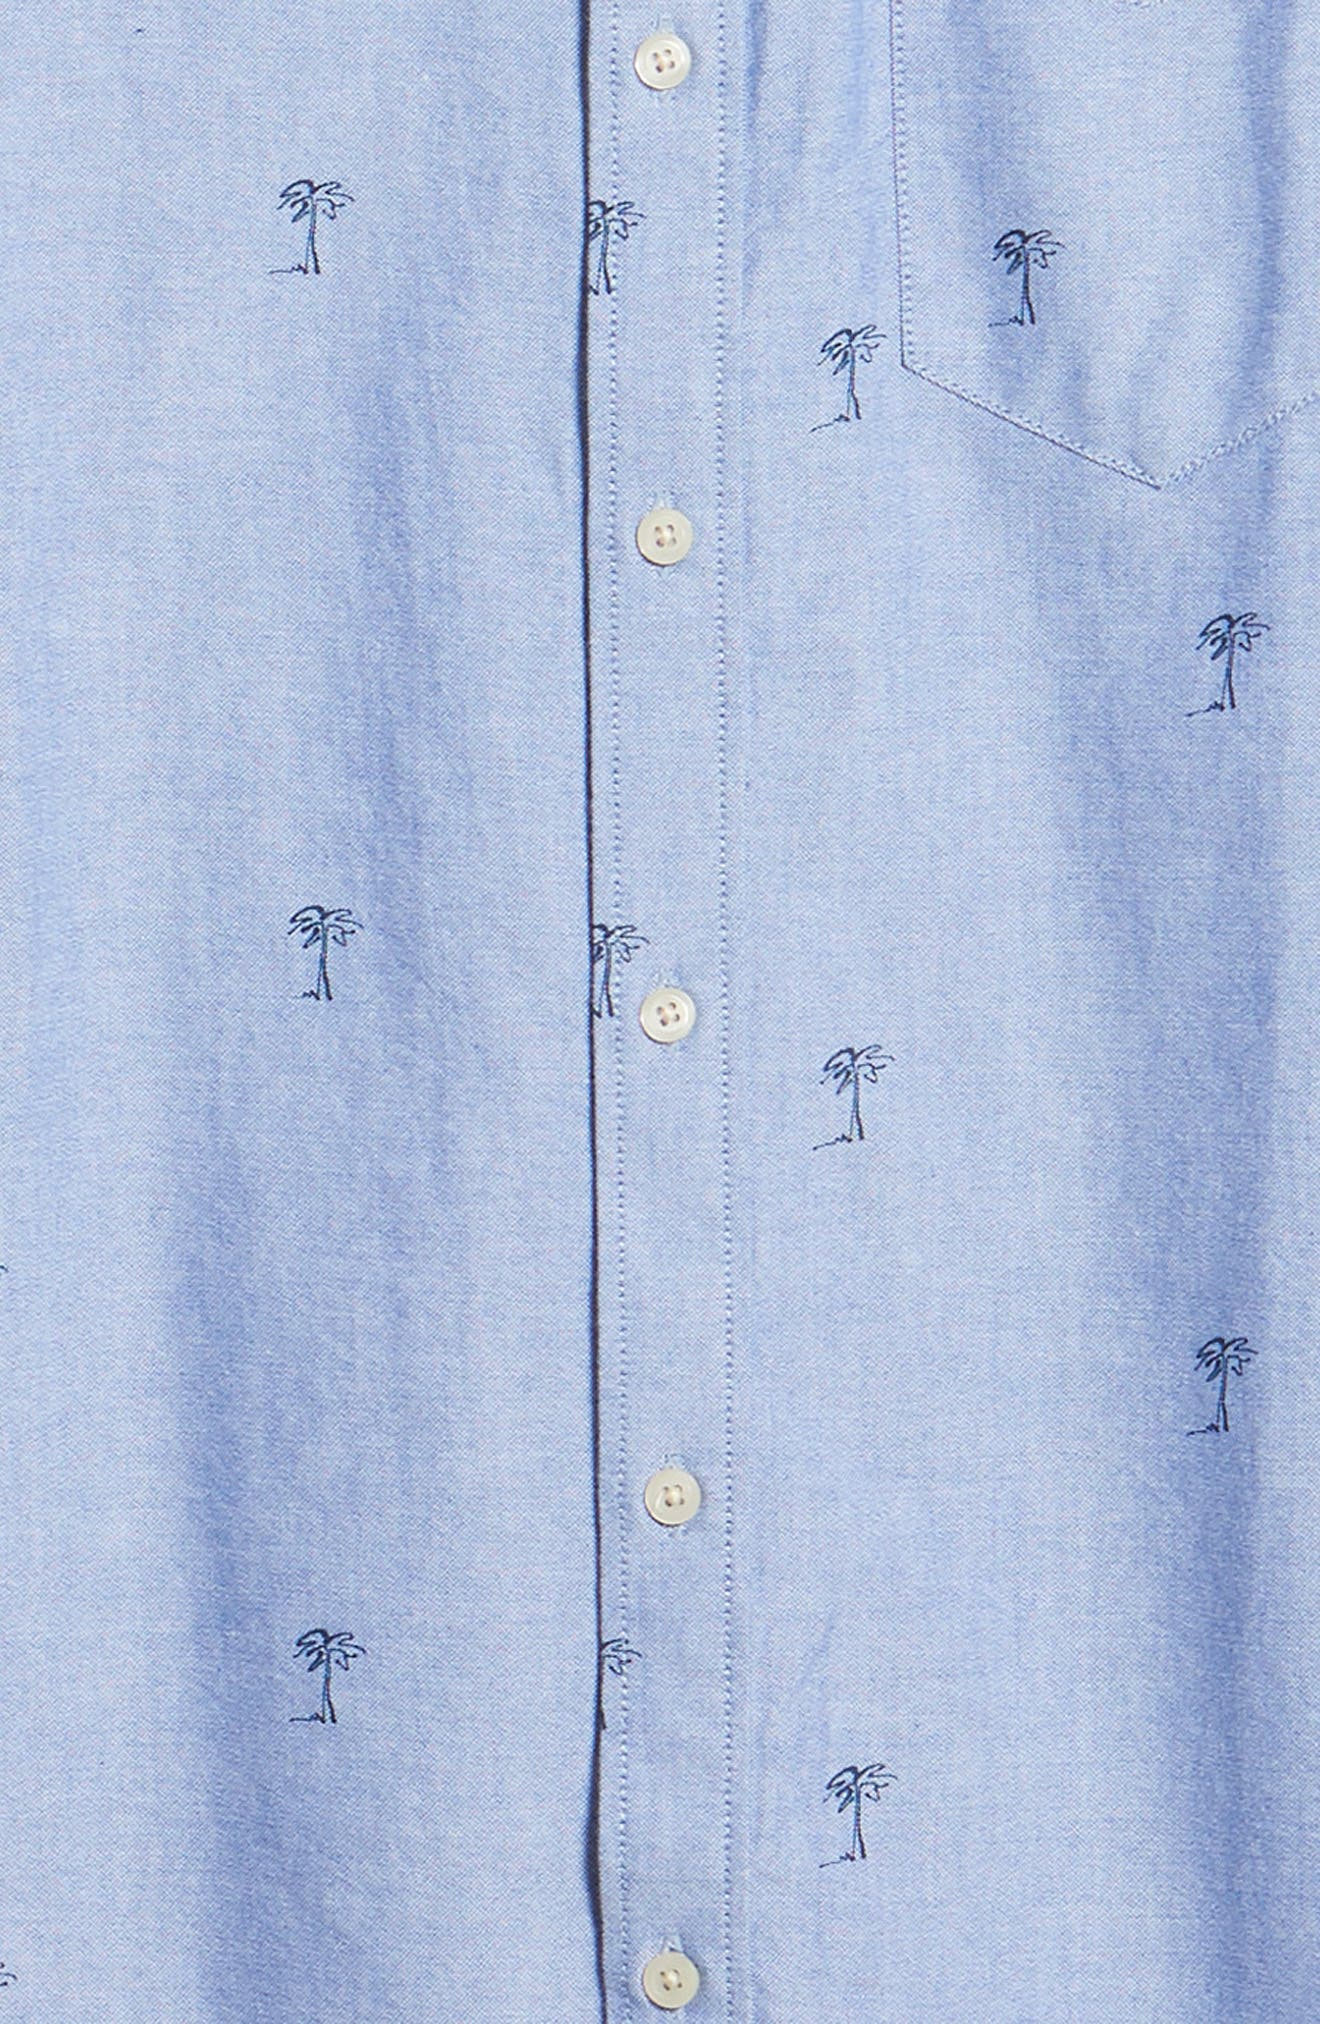 Houser Palm Tree Woven Shirt,                             Alternate thumbnail 6, color,                             MAZARINE BLUE